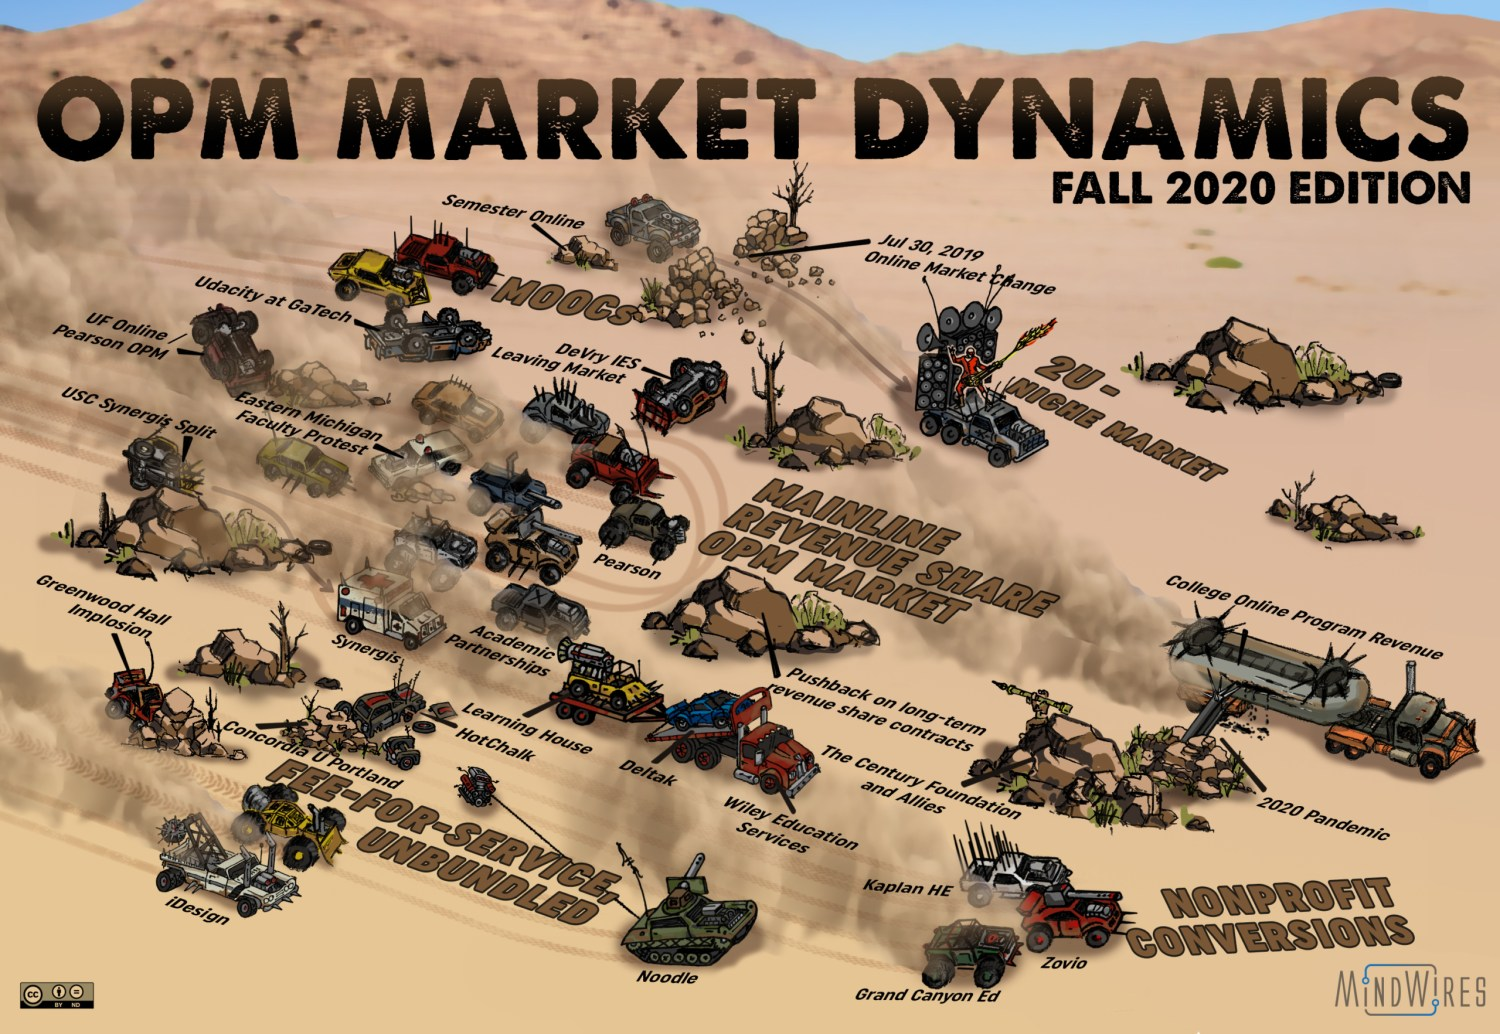 OPM Market Dynamics, Fall 2020, revised by Noodle acquisition of HotChalk assets and by pandemic risk for college revenue